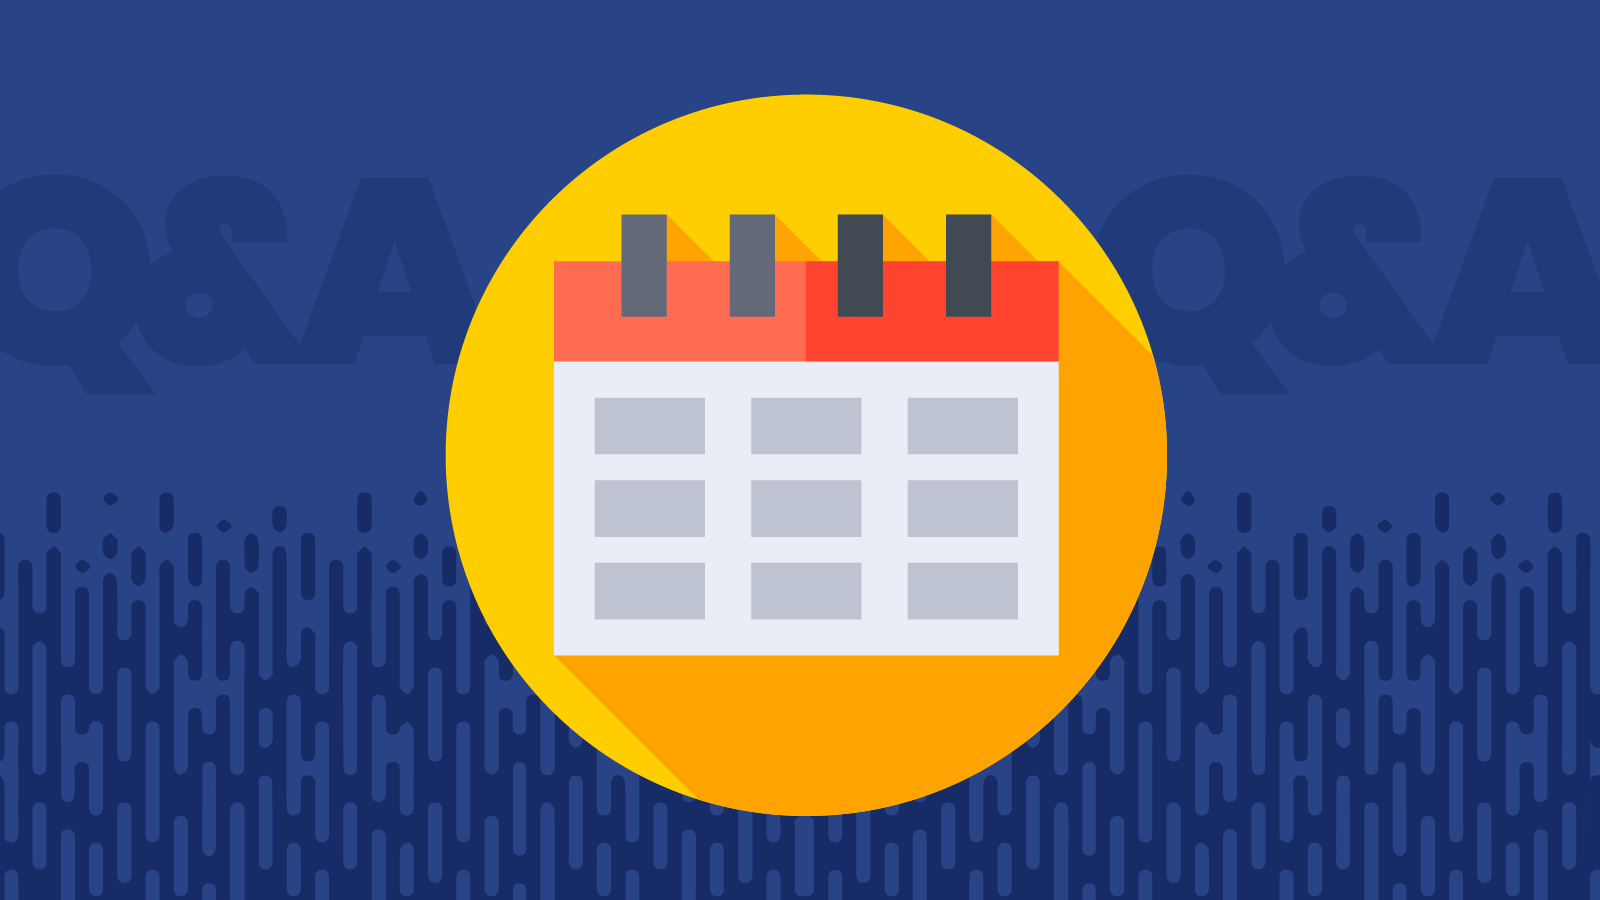 Illustration of a calendar for email project management